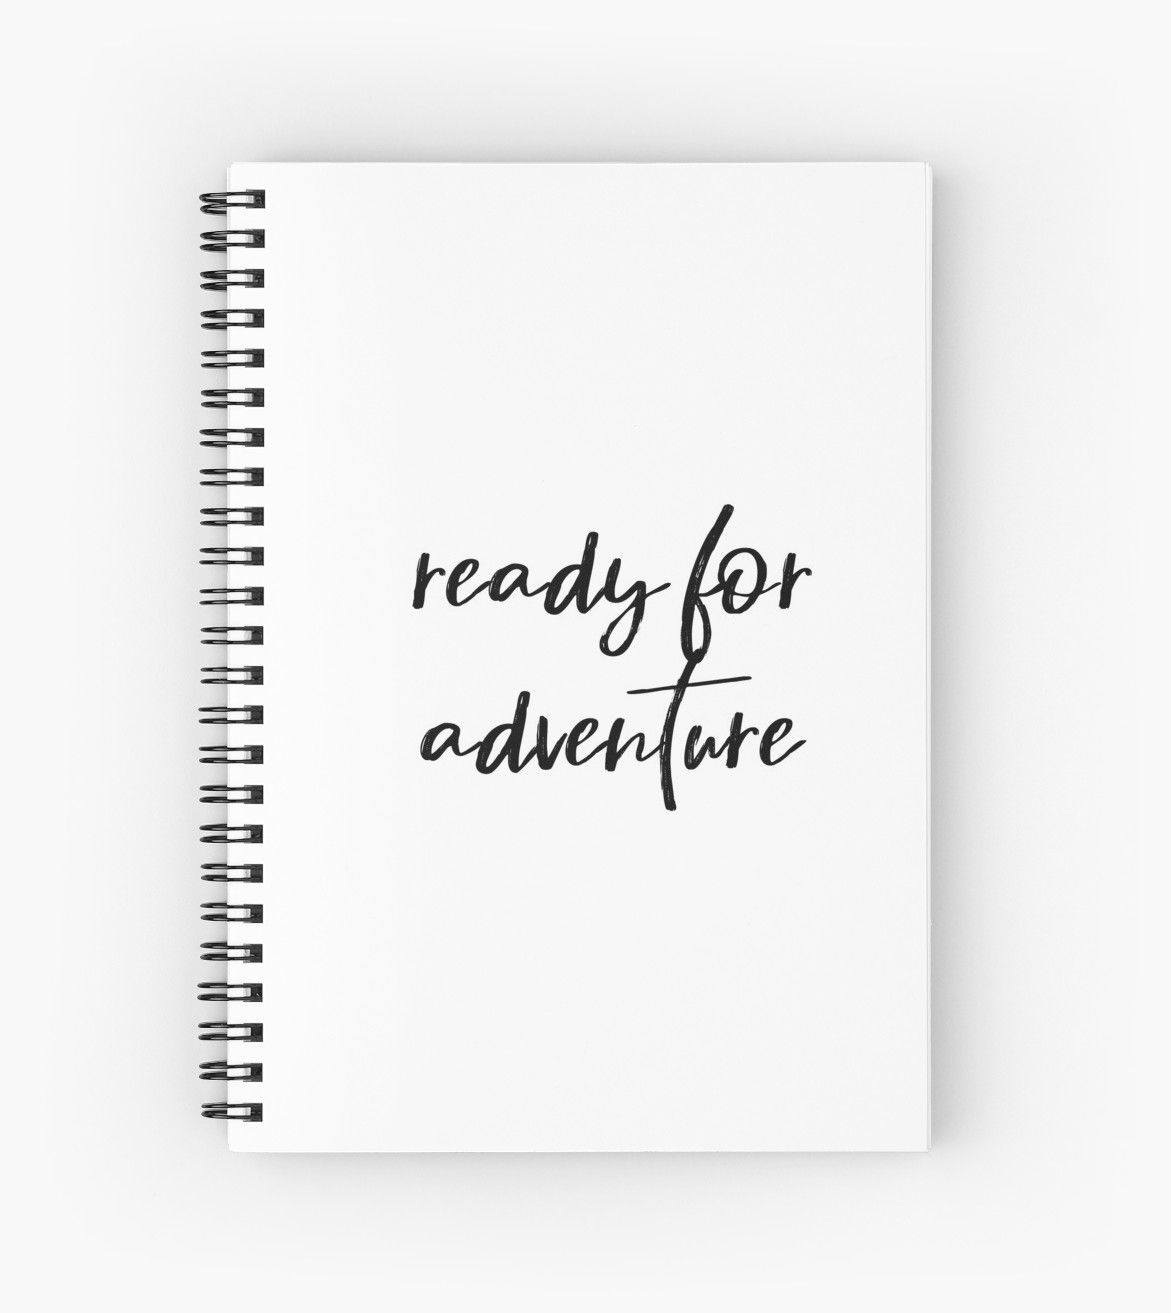 Ready For Adventure Spiral Notebooks By Brightnomad Redbubble Travel Journal Inspiration Ideas Scr Travel Scrapbook Travel Journal Vacation Journal